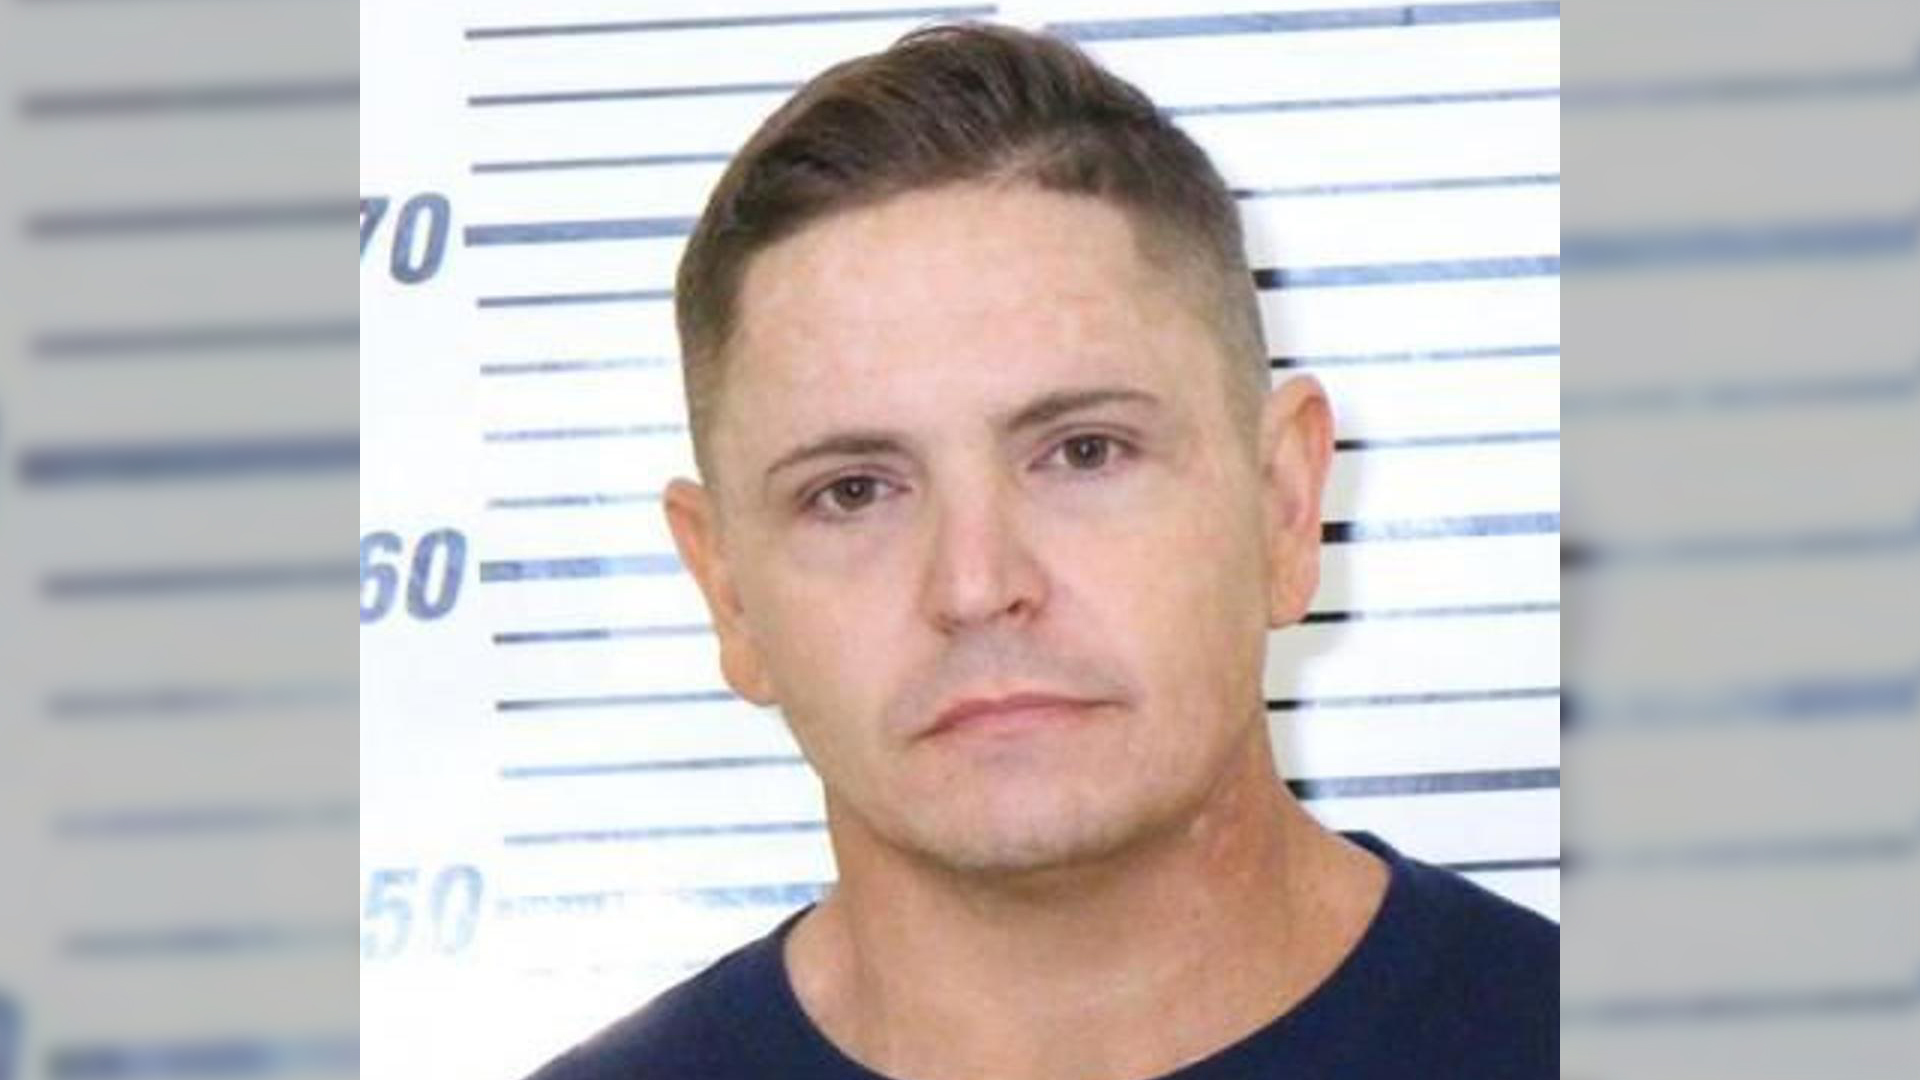 Christopher Lee Schulz, 41, of Geneseo plead guilty on March 20, 2020 to bank robberies in Illinois and Iowa.